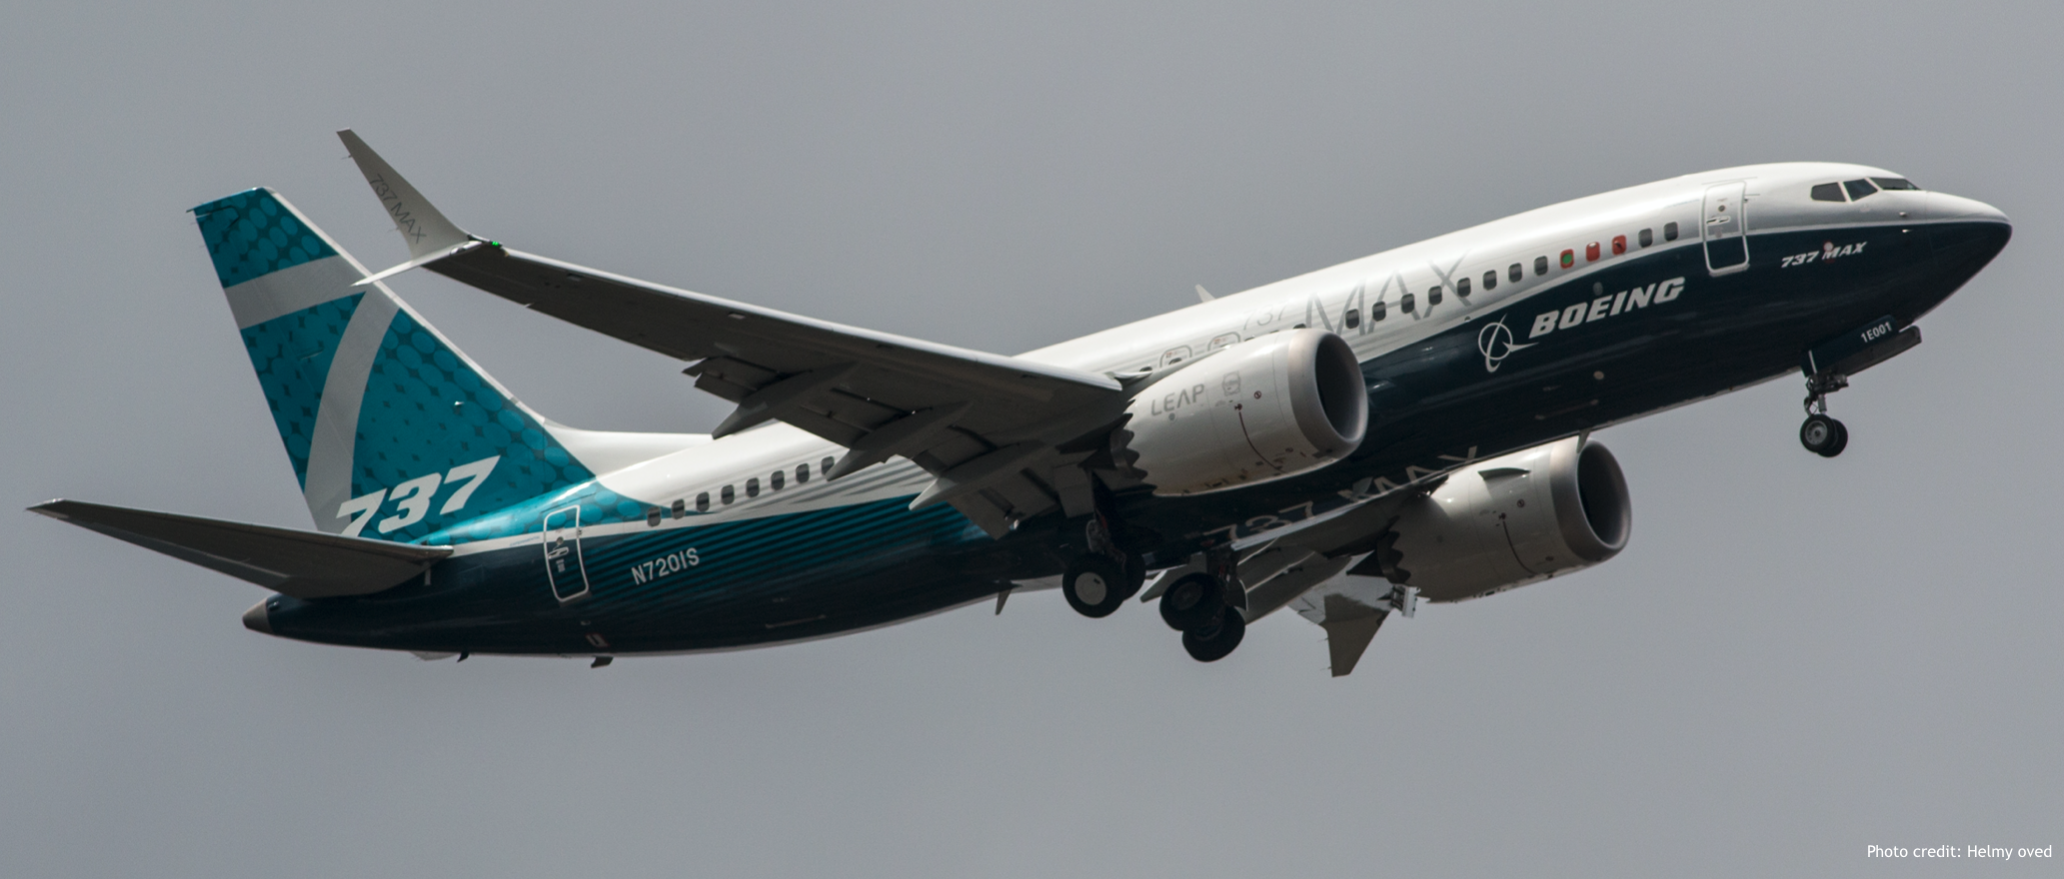 What a problem solver can learn from the unfolding 737 Max story